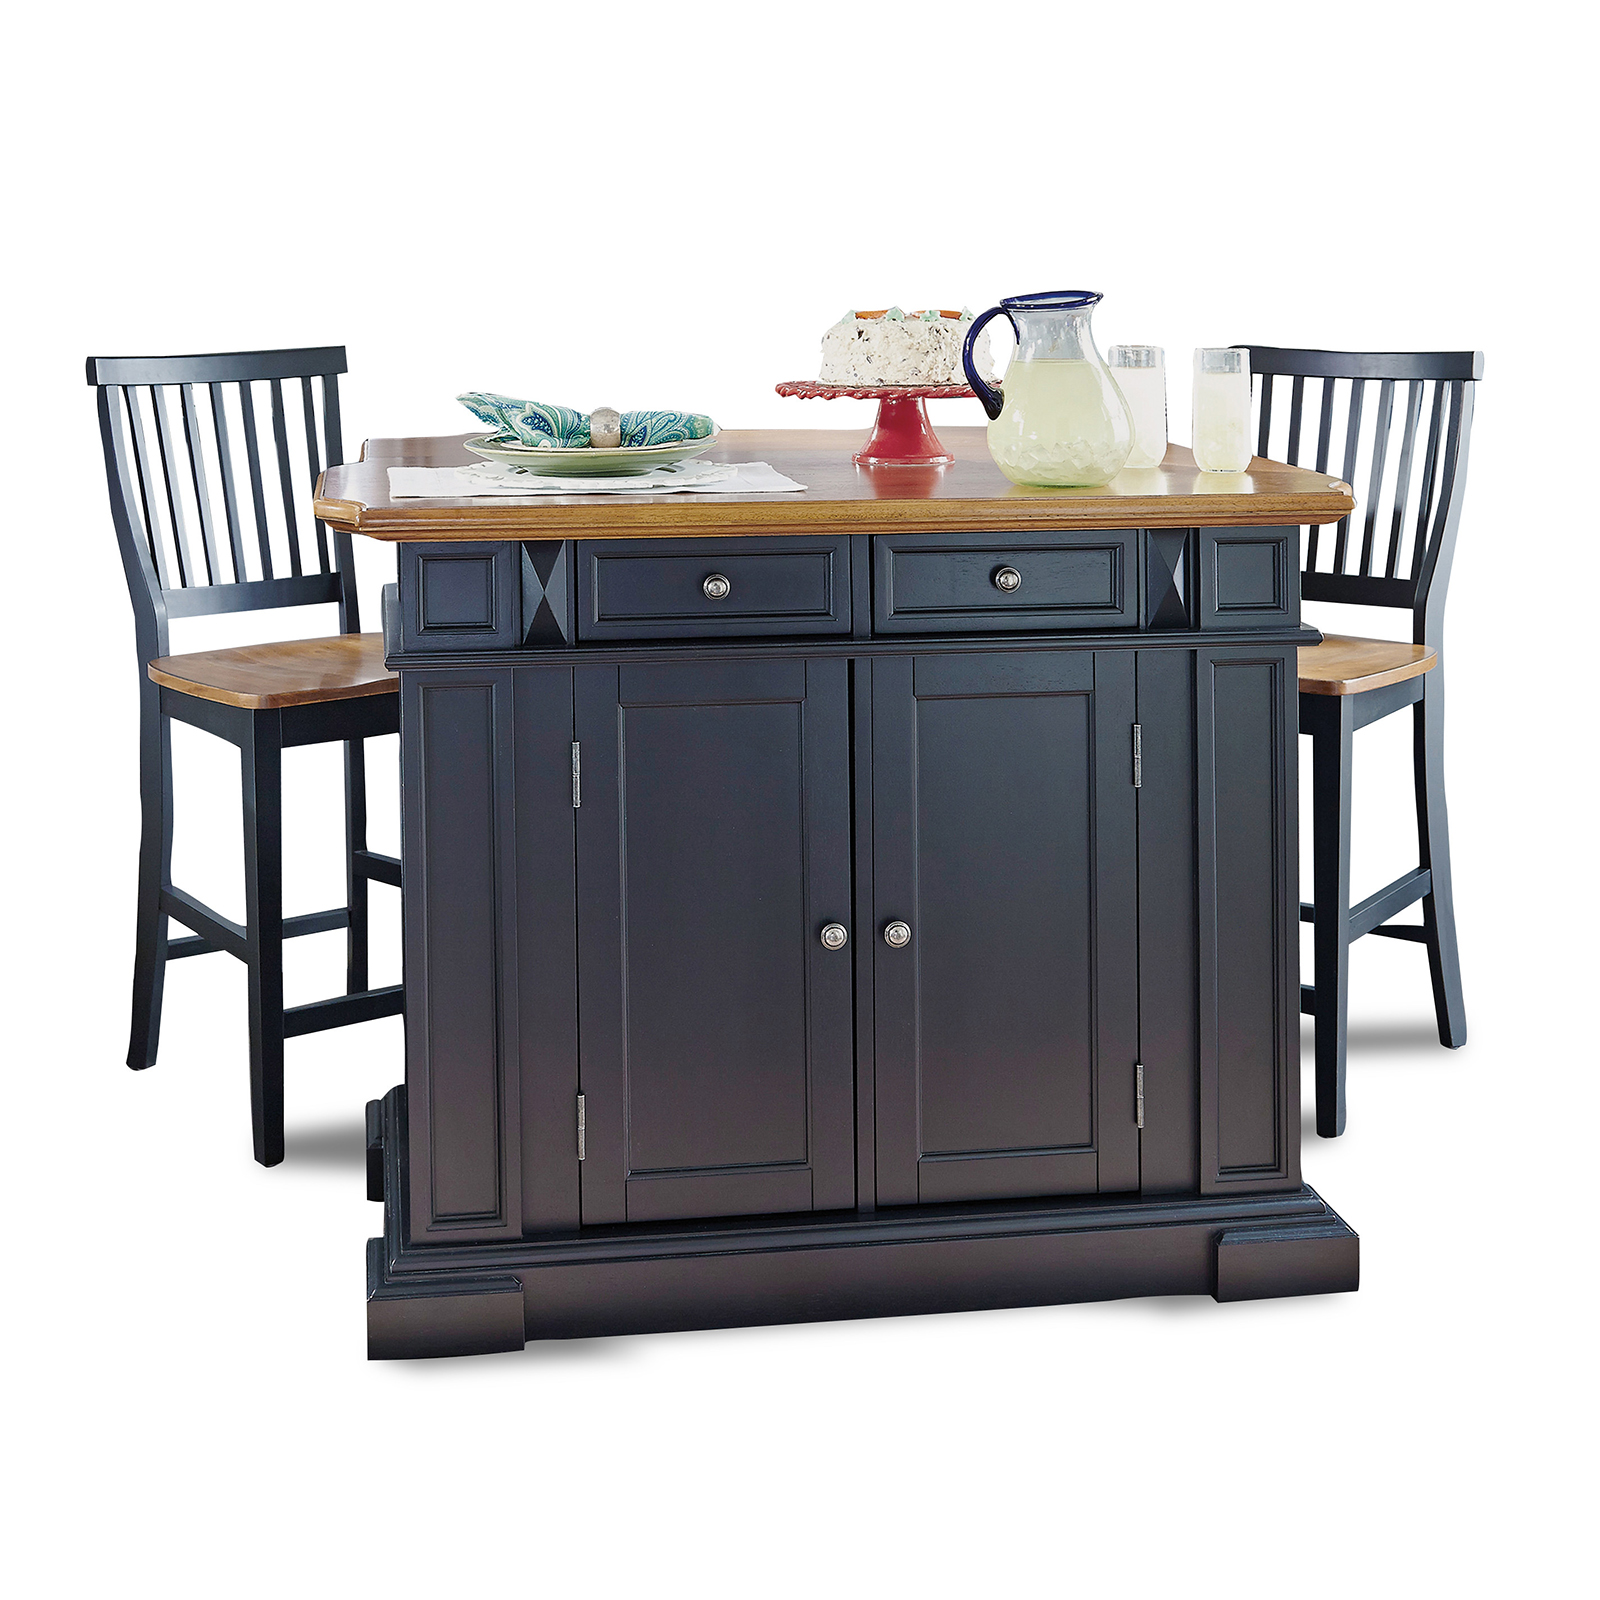 Home Styles Large Kitchen Island Set With 2 Stationary Stools Antique Black Oak Kitchen